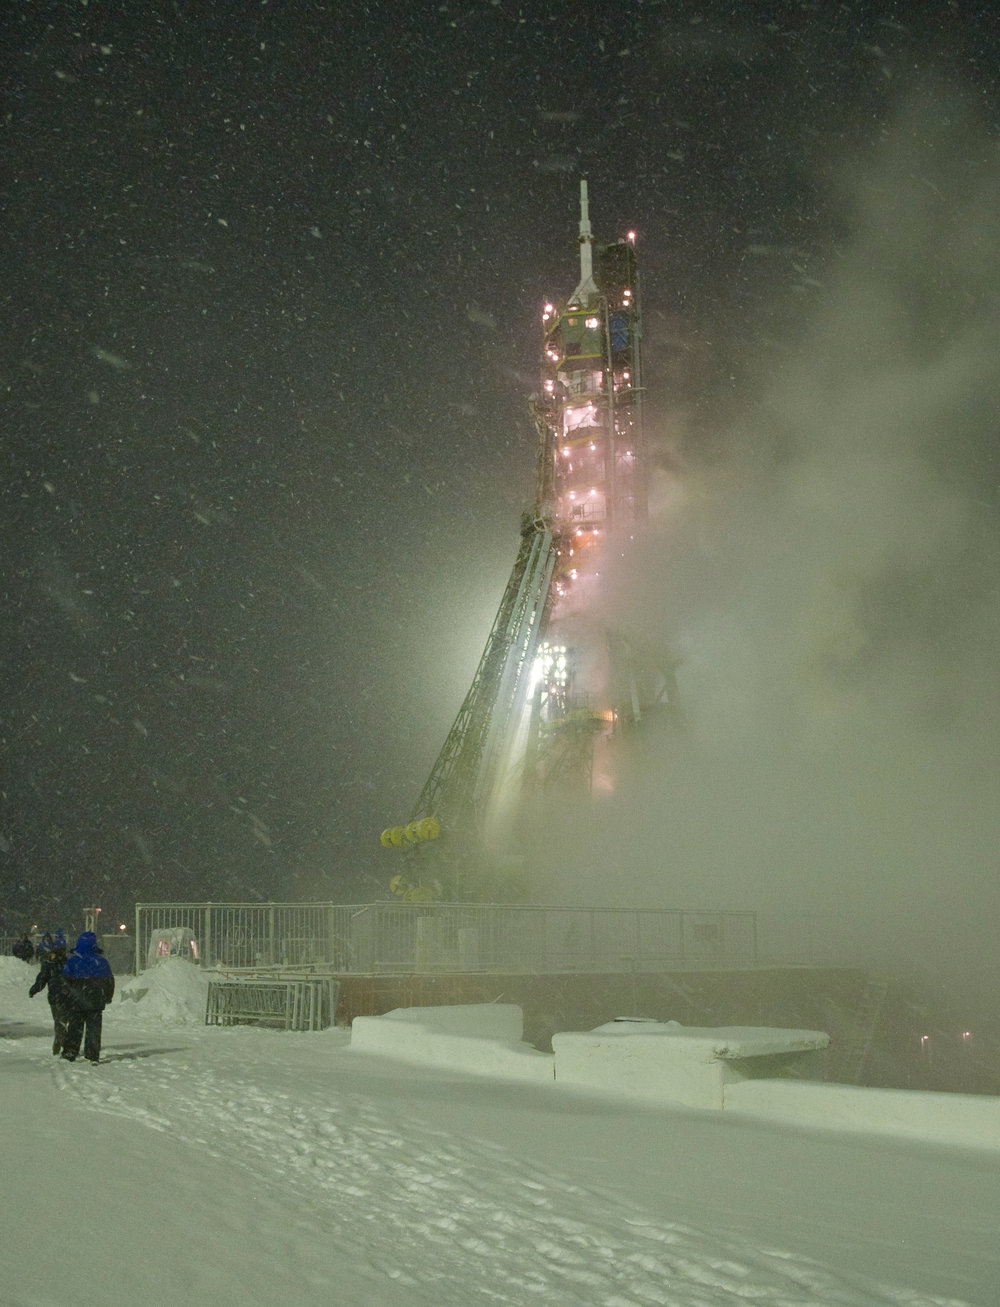 """ Soyuz TMA-22 rocket during a snow storm the morning of the launch "" by  NASA / Carla Cioffi  is  Public Domain ."